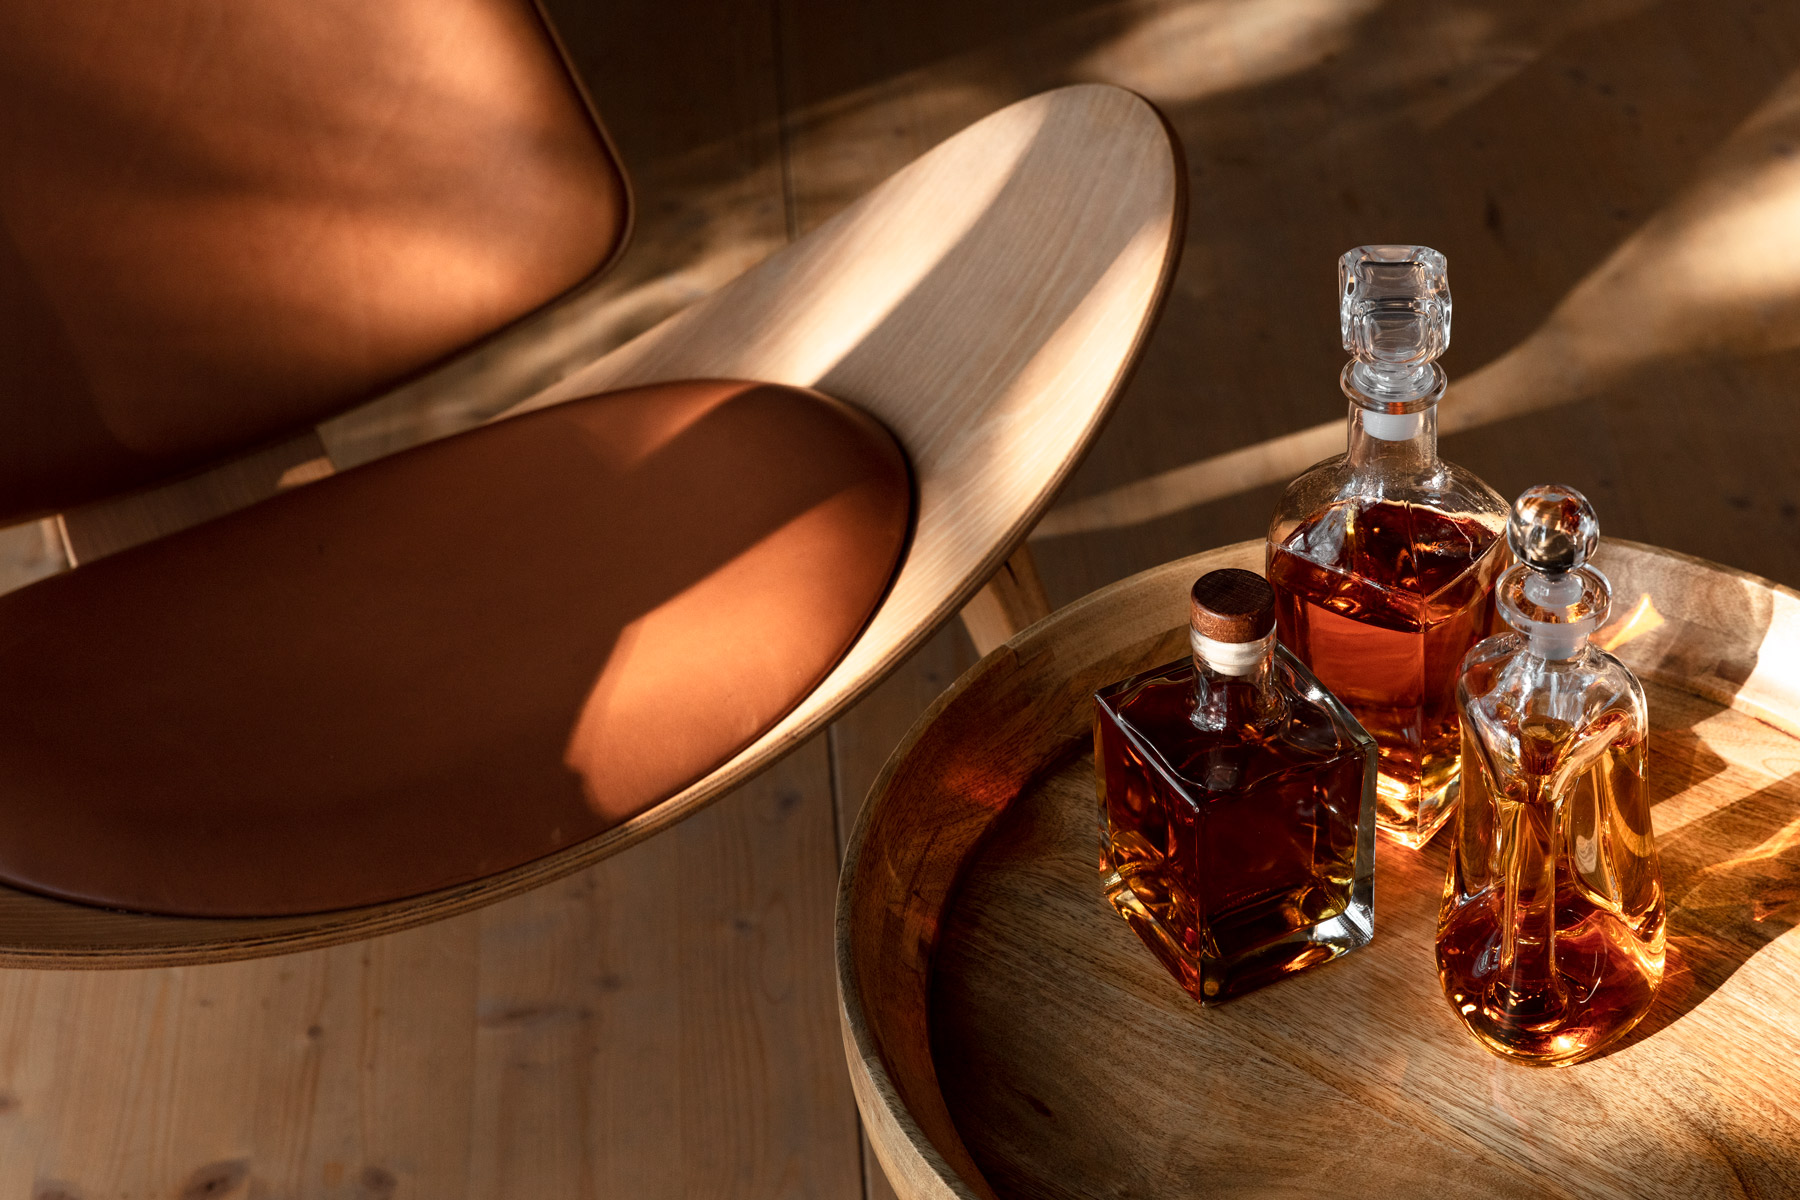 Bourbon, Scotch, and Whisky: What's the difference?